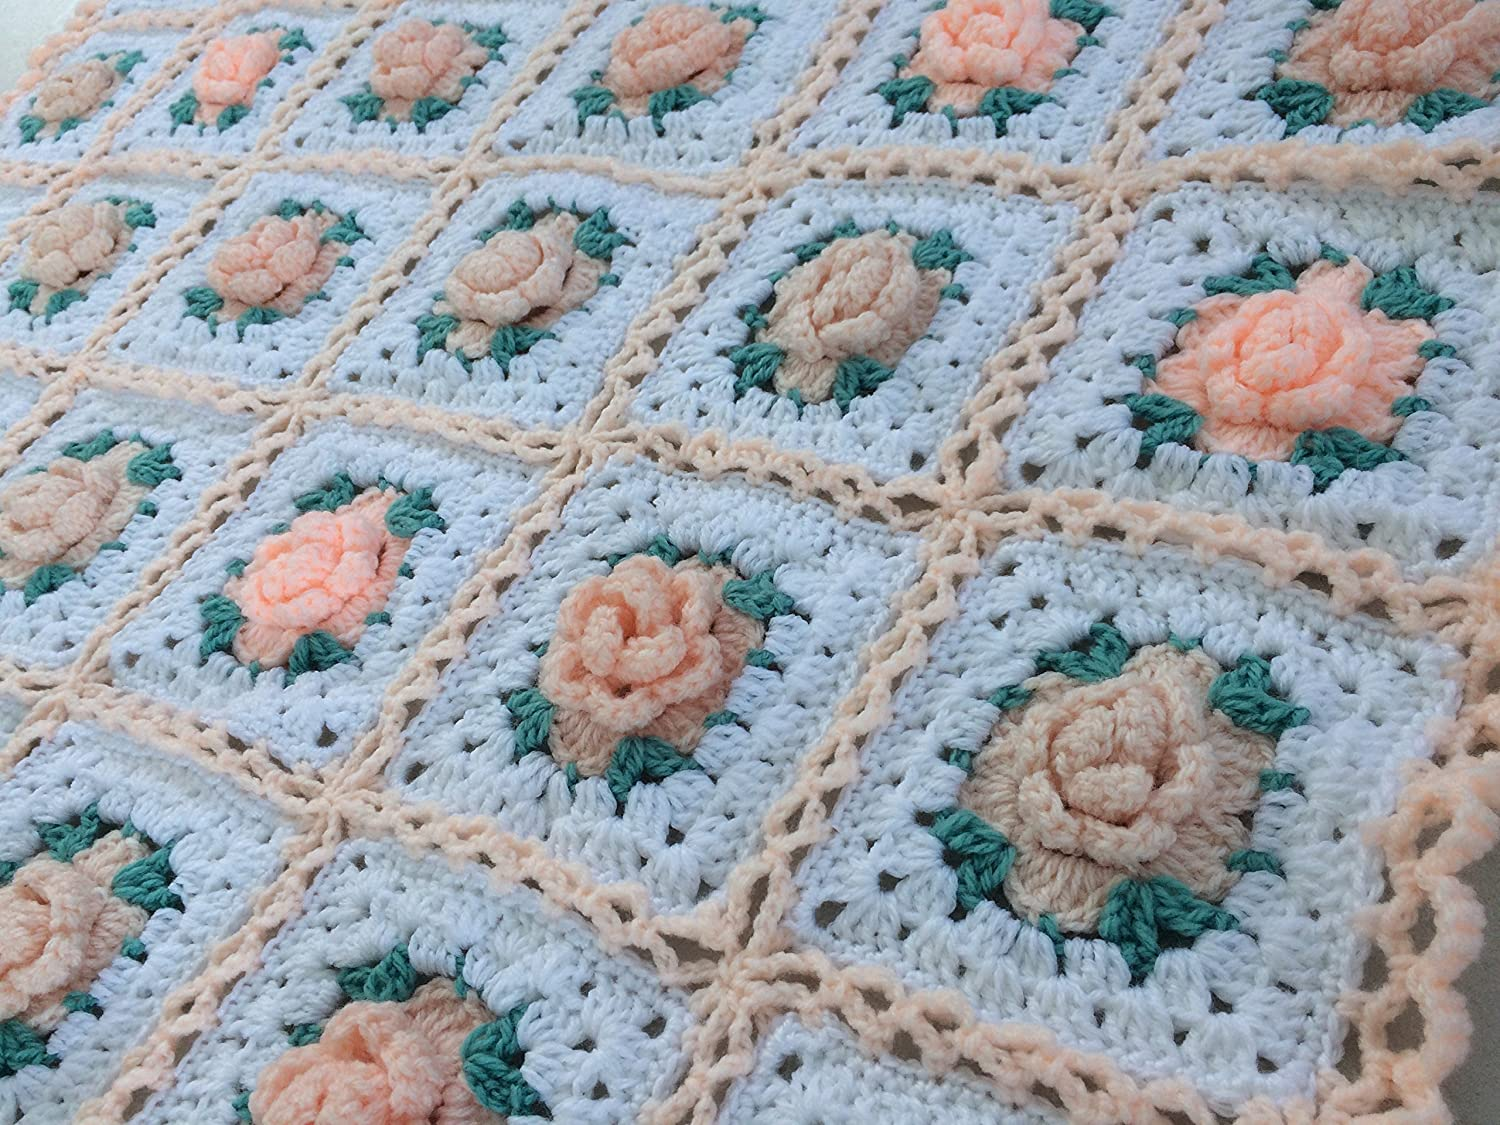 Image of Baby Blanket. Crocheted Blanket. Baby Afghan. Shabby Chic Granny Square Baby Blanket with 3 Dimensional Roses. Home and Kitchen